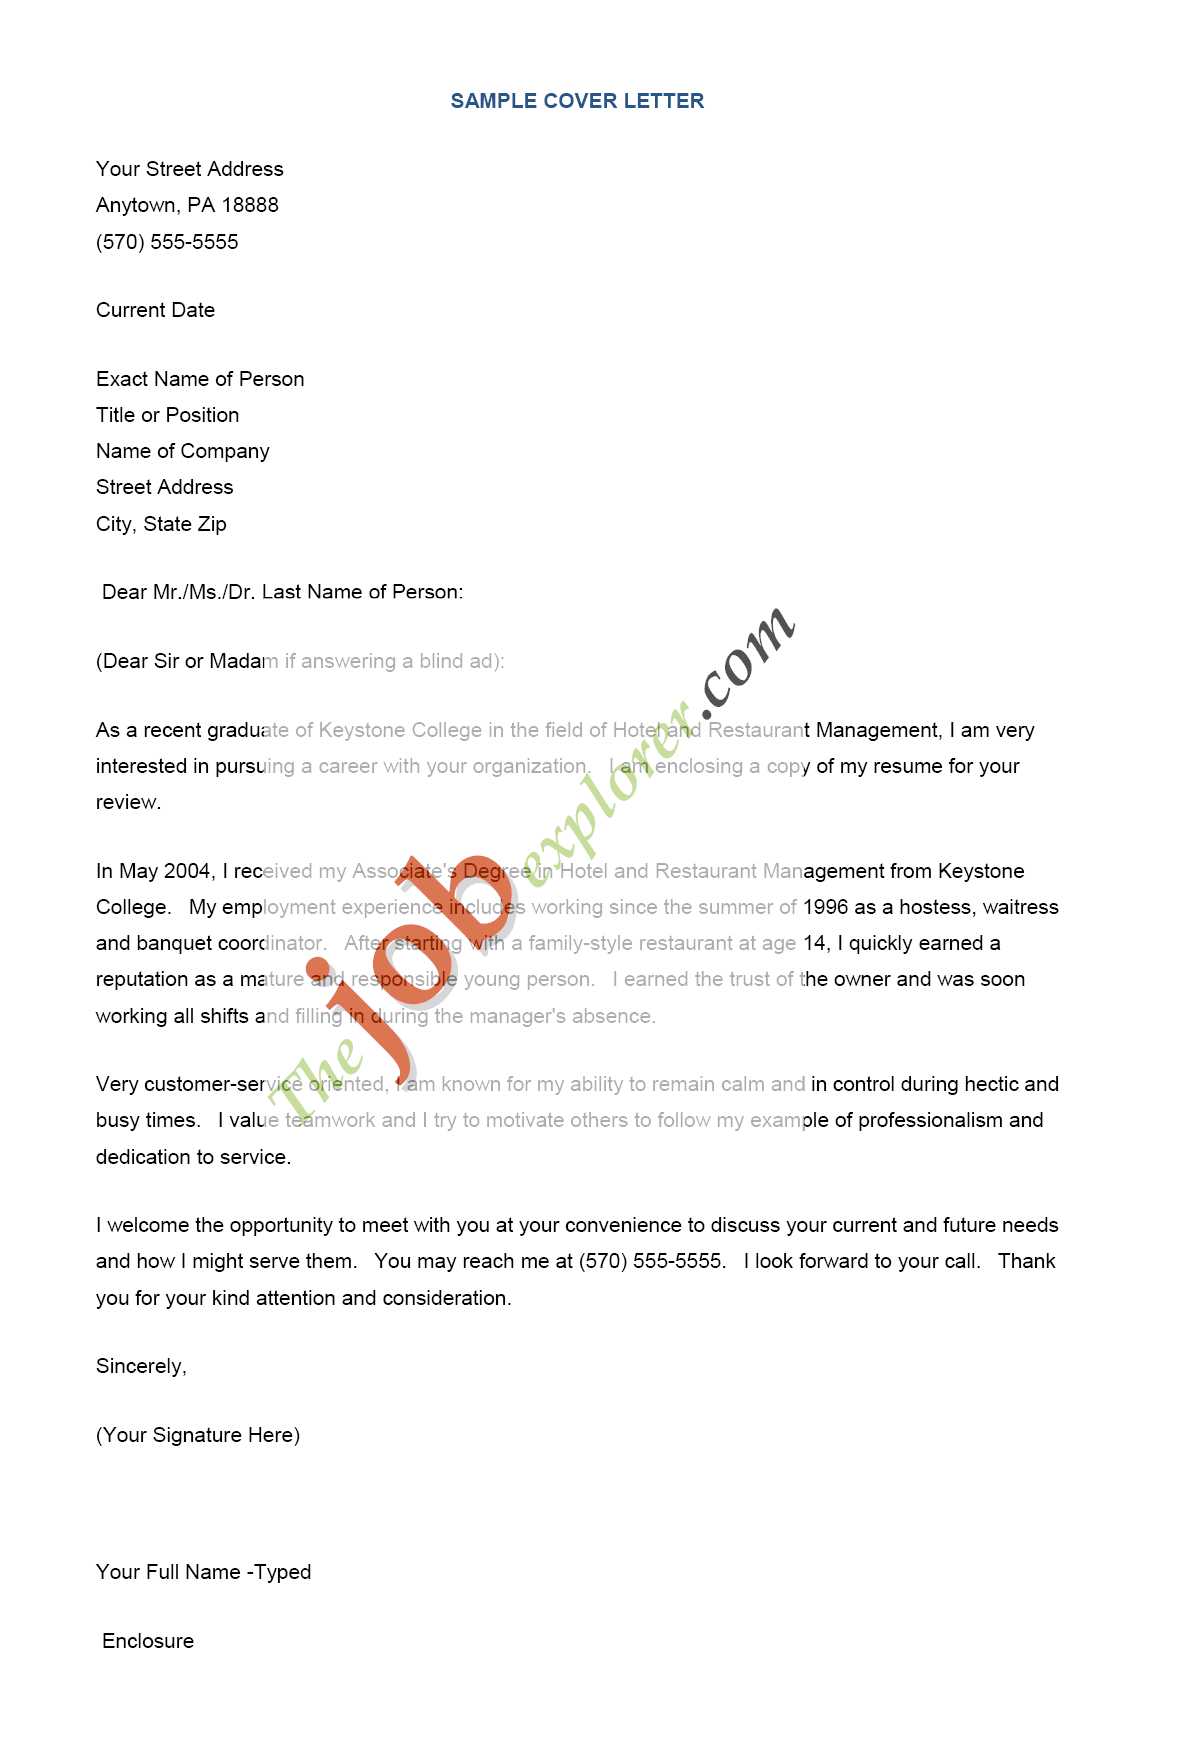 Resume Letter Examples Job Resume Cover Letter Example Sample Letters For Jobs